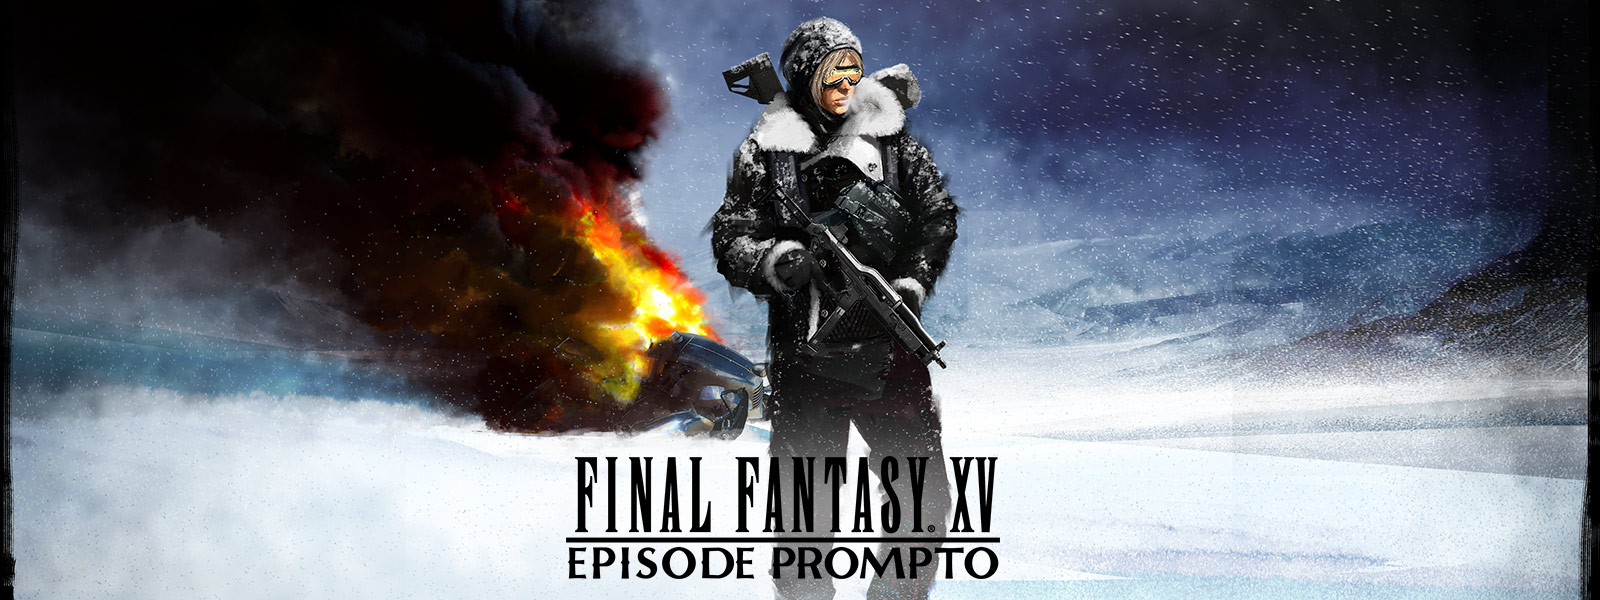 FINAL FANTASY XV: Episode Prompto,Prompto 拿著武器,站在撞毀的車輛前方。